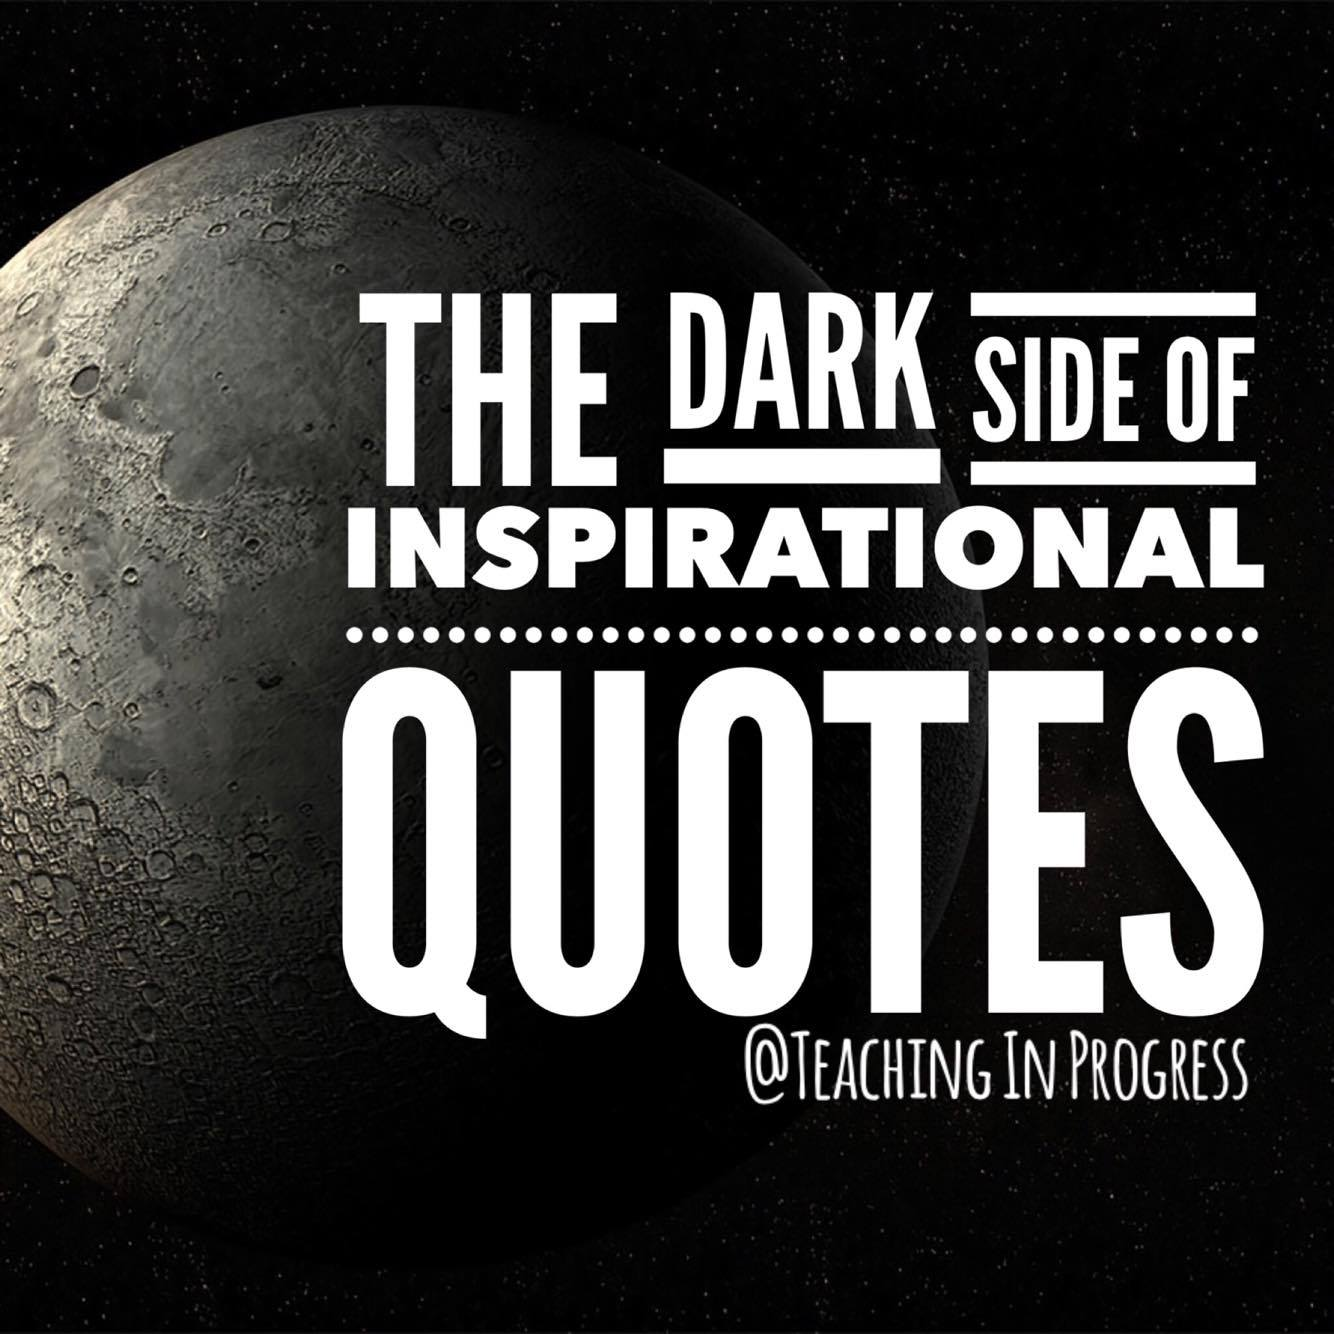 Inspirational Teaching Quotes New The Dark Side Of Inspirational Quotes  Teaching In Progress